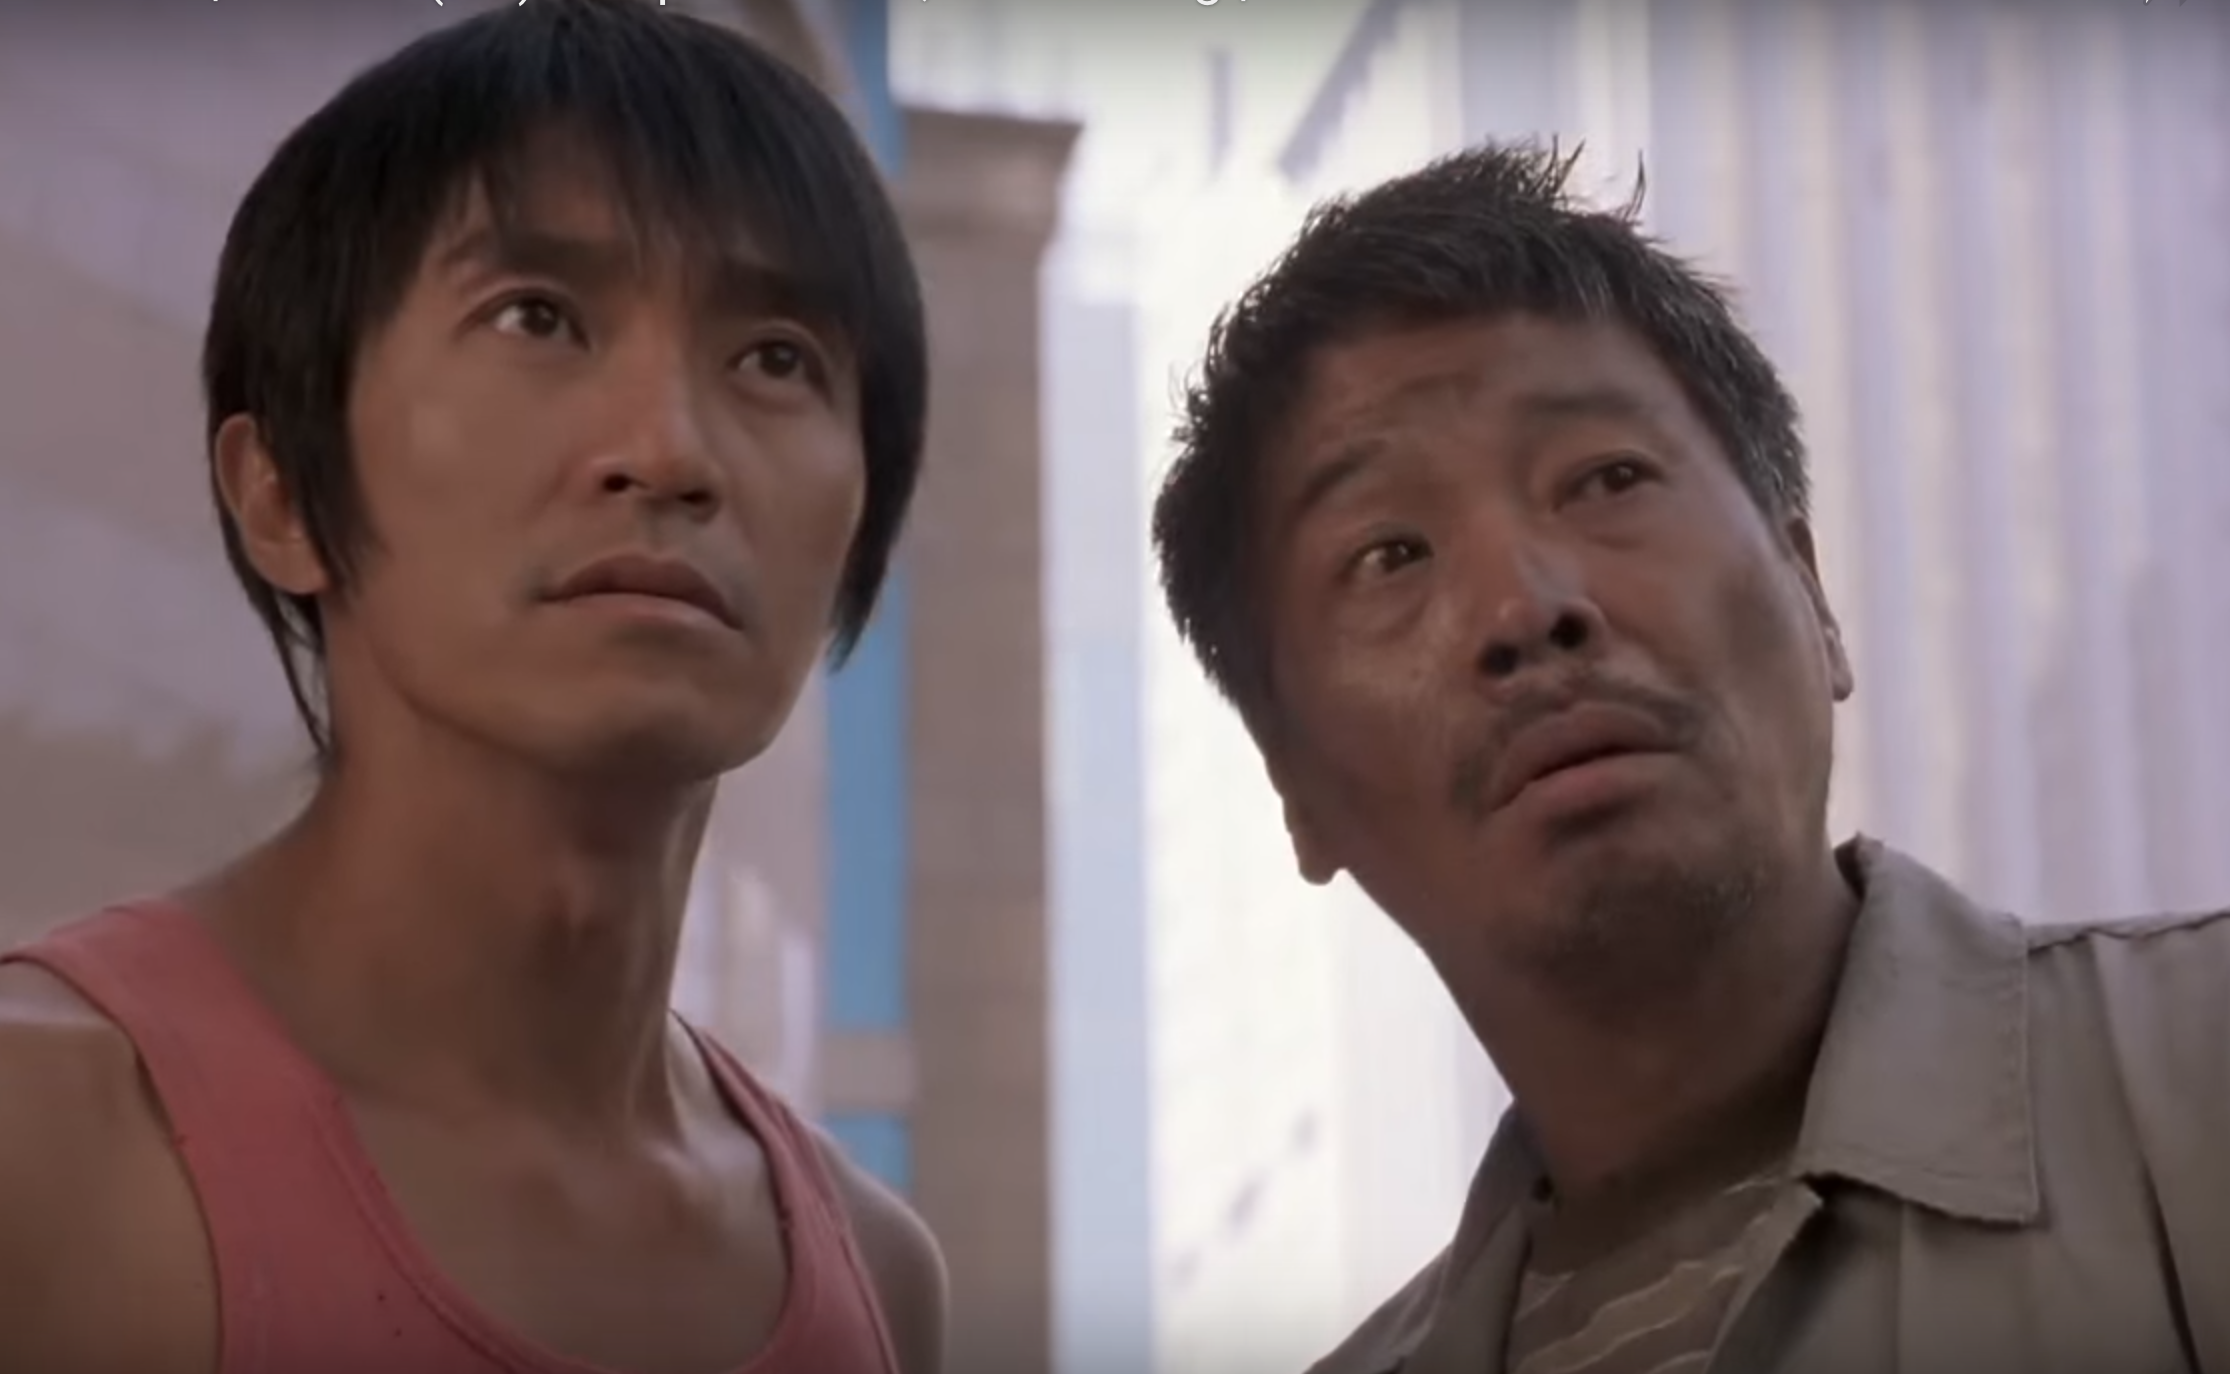 Stephen Chow and Ng Man-tat in the film Shaolin Soccer. (Image: YouTube/Screenshot)